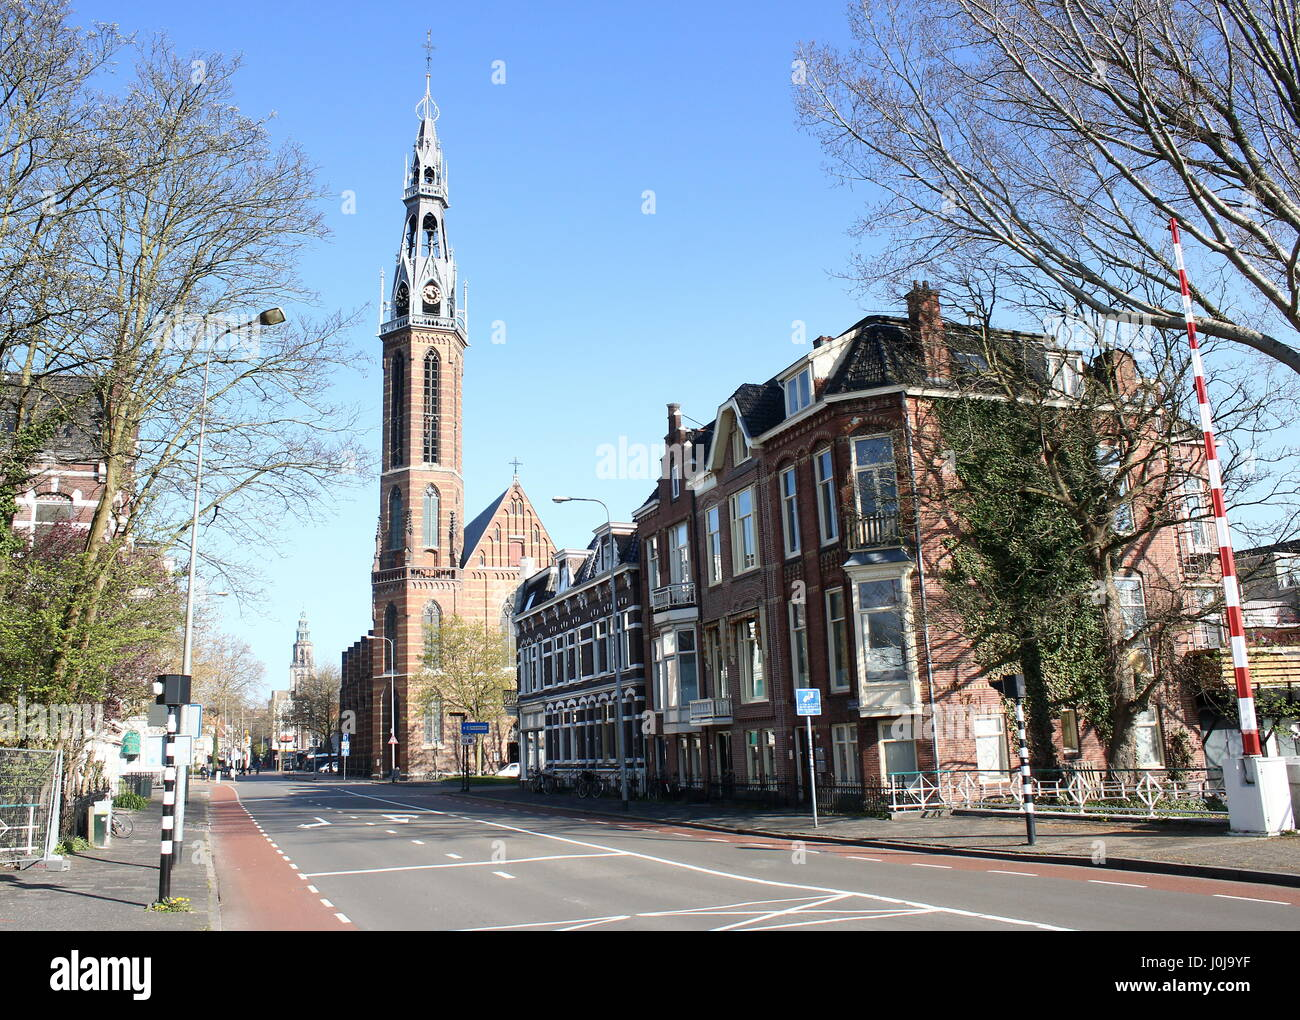 St. Joseph Cathedral (Sint Jozef kathedraal), cathedral of the Roman Catholic Diocese of Groningen / Leeuwarden - Stock Image